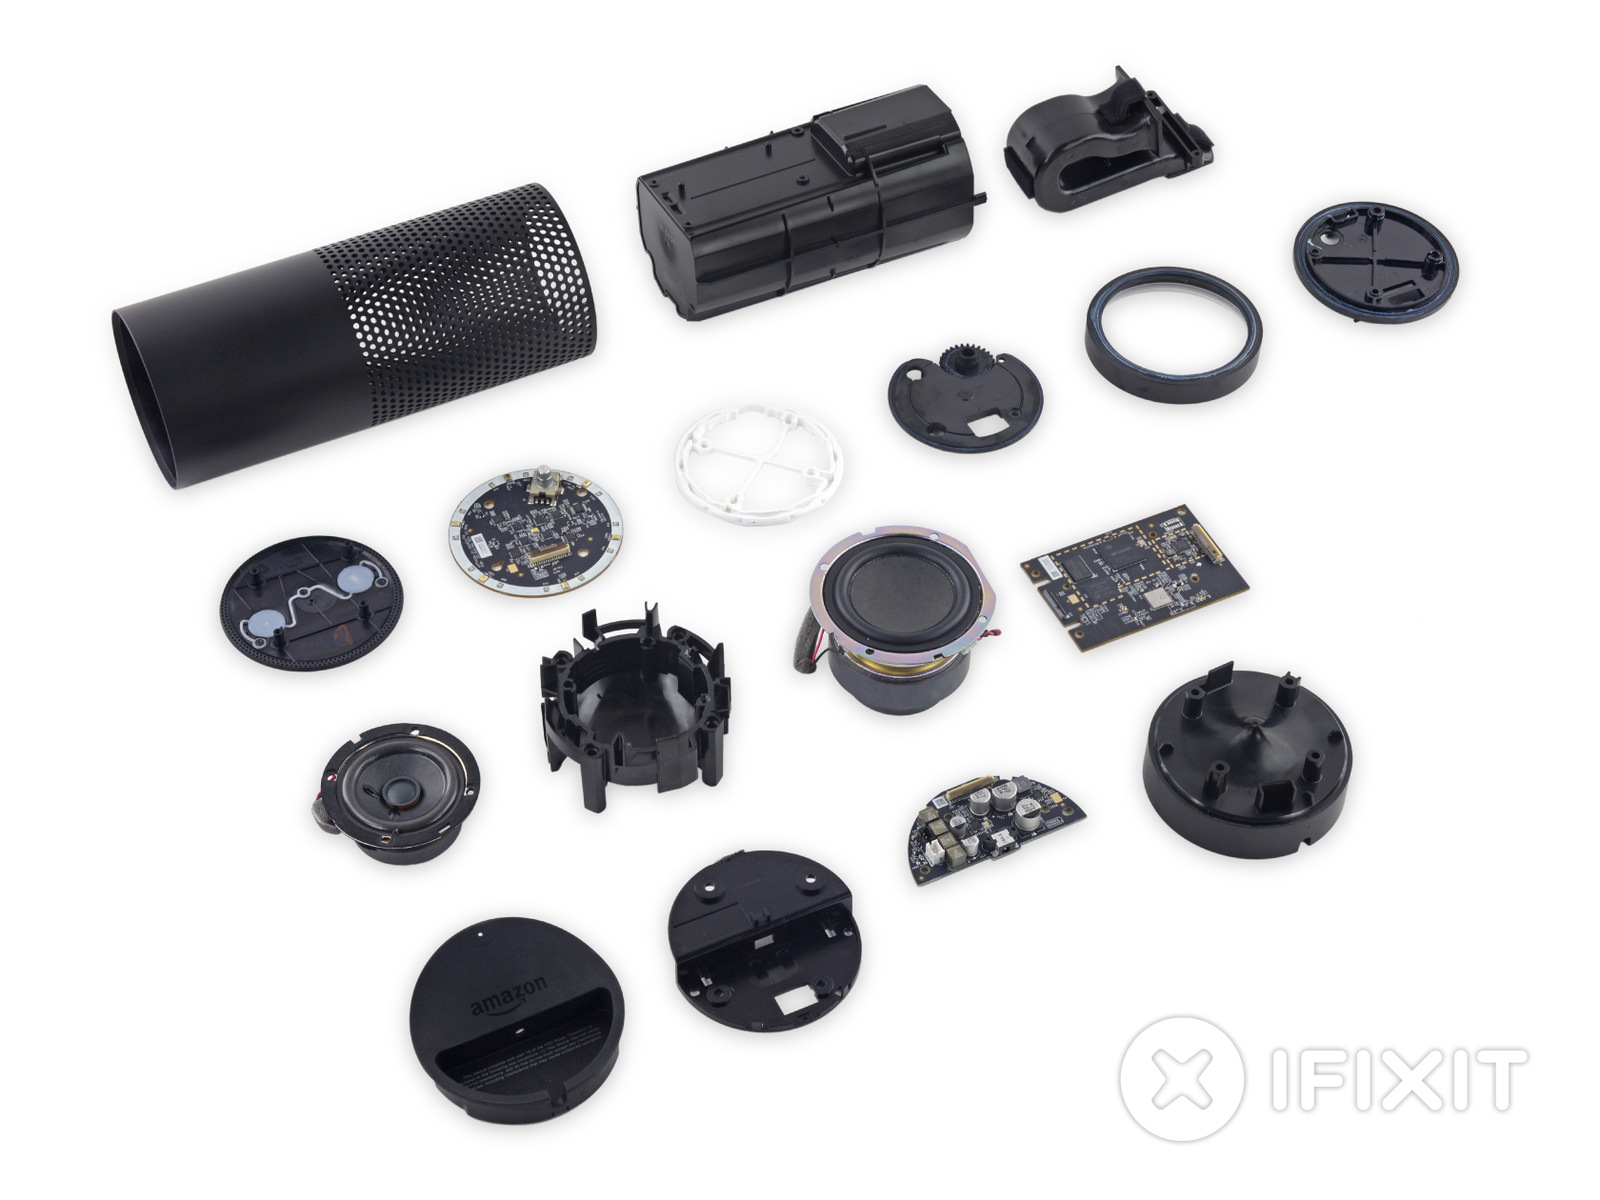 ifixit amazon echo teardown reveals a bit of computer  a